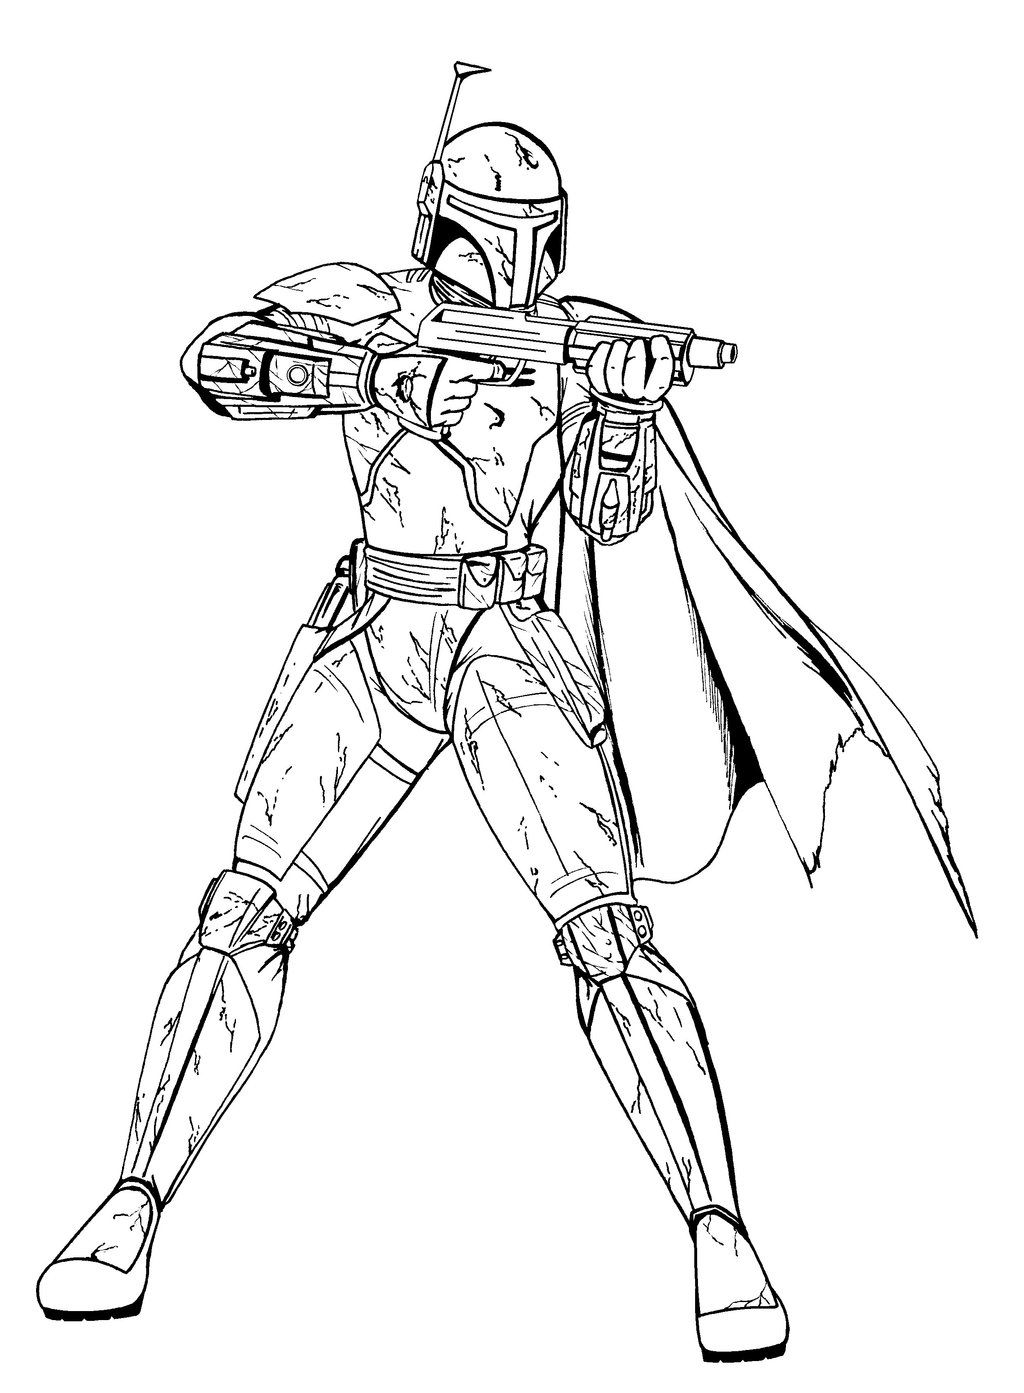 Star Wars Coloring Pages | ΧΡΩΜΟΣΕΛΙΔΕΣ STAR WARS | Pinterest ...